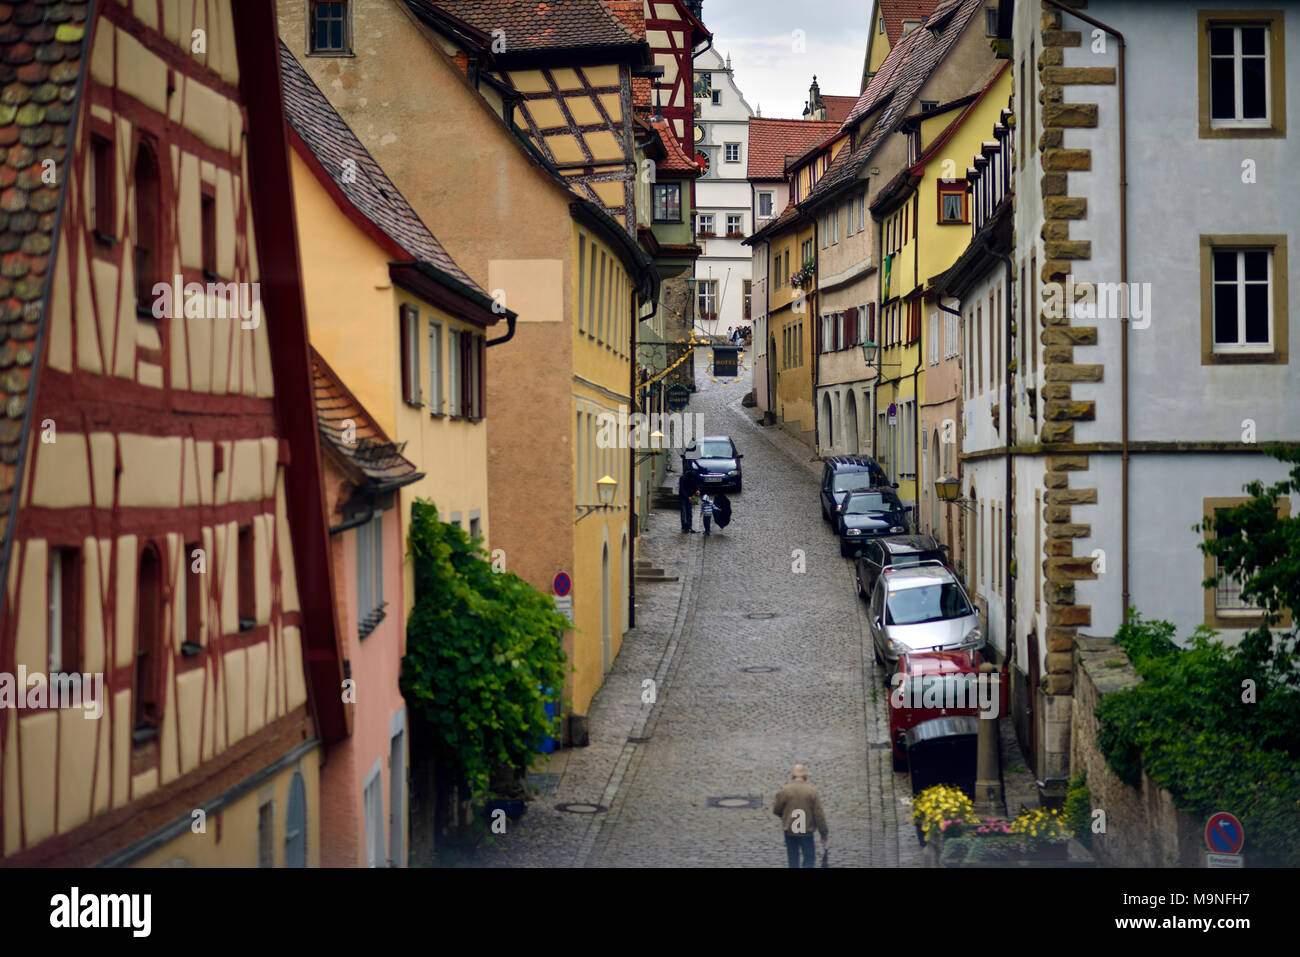 A view of a street in the medieval town of Rothenburg ob der Tauber, Germany. - Stock Image